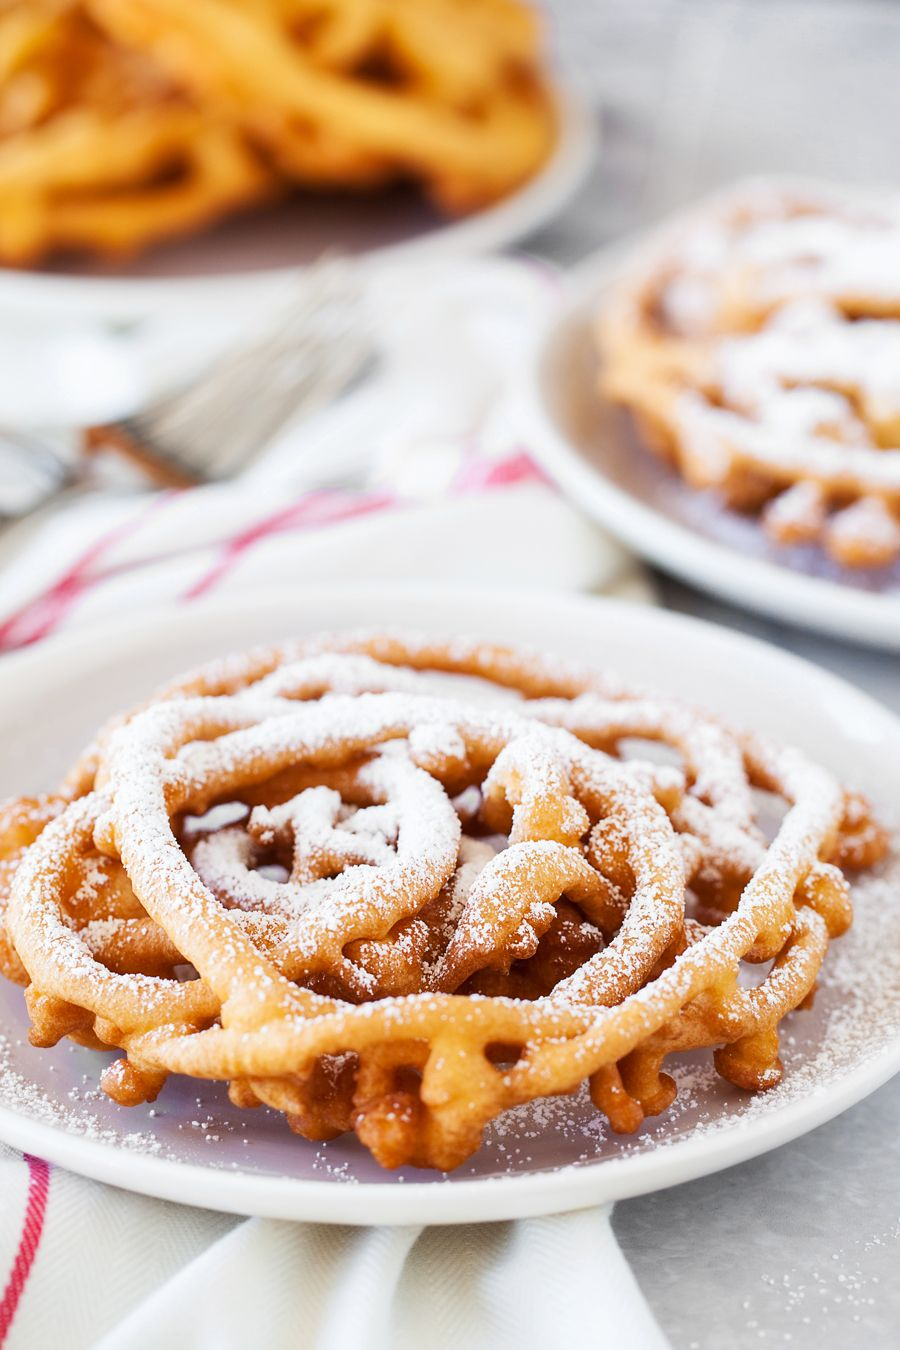 This simple and delicious funnel cake recipe tastes just like the famous county fairs!